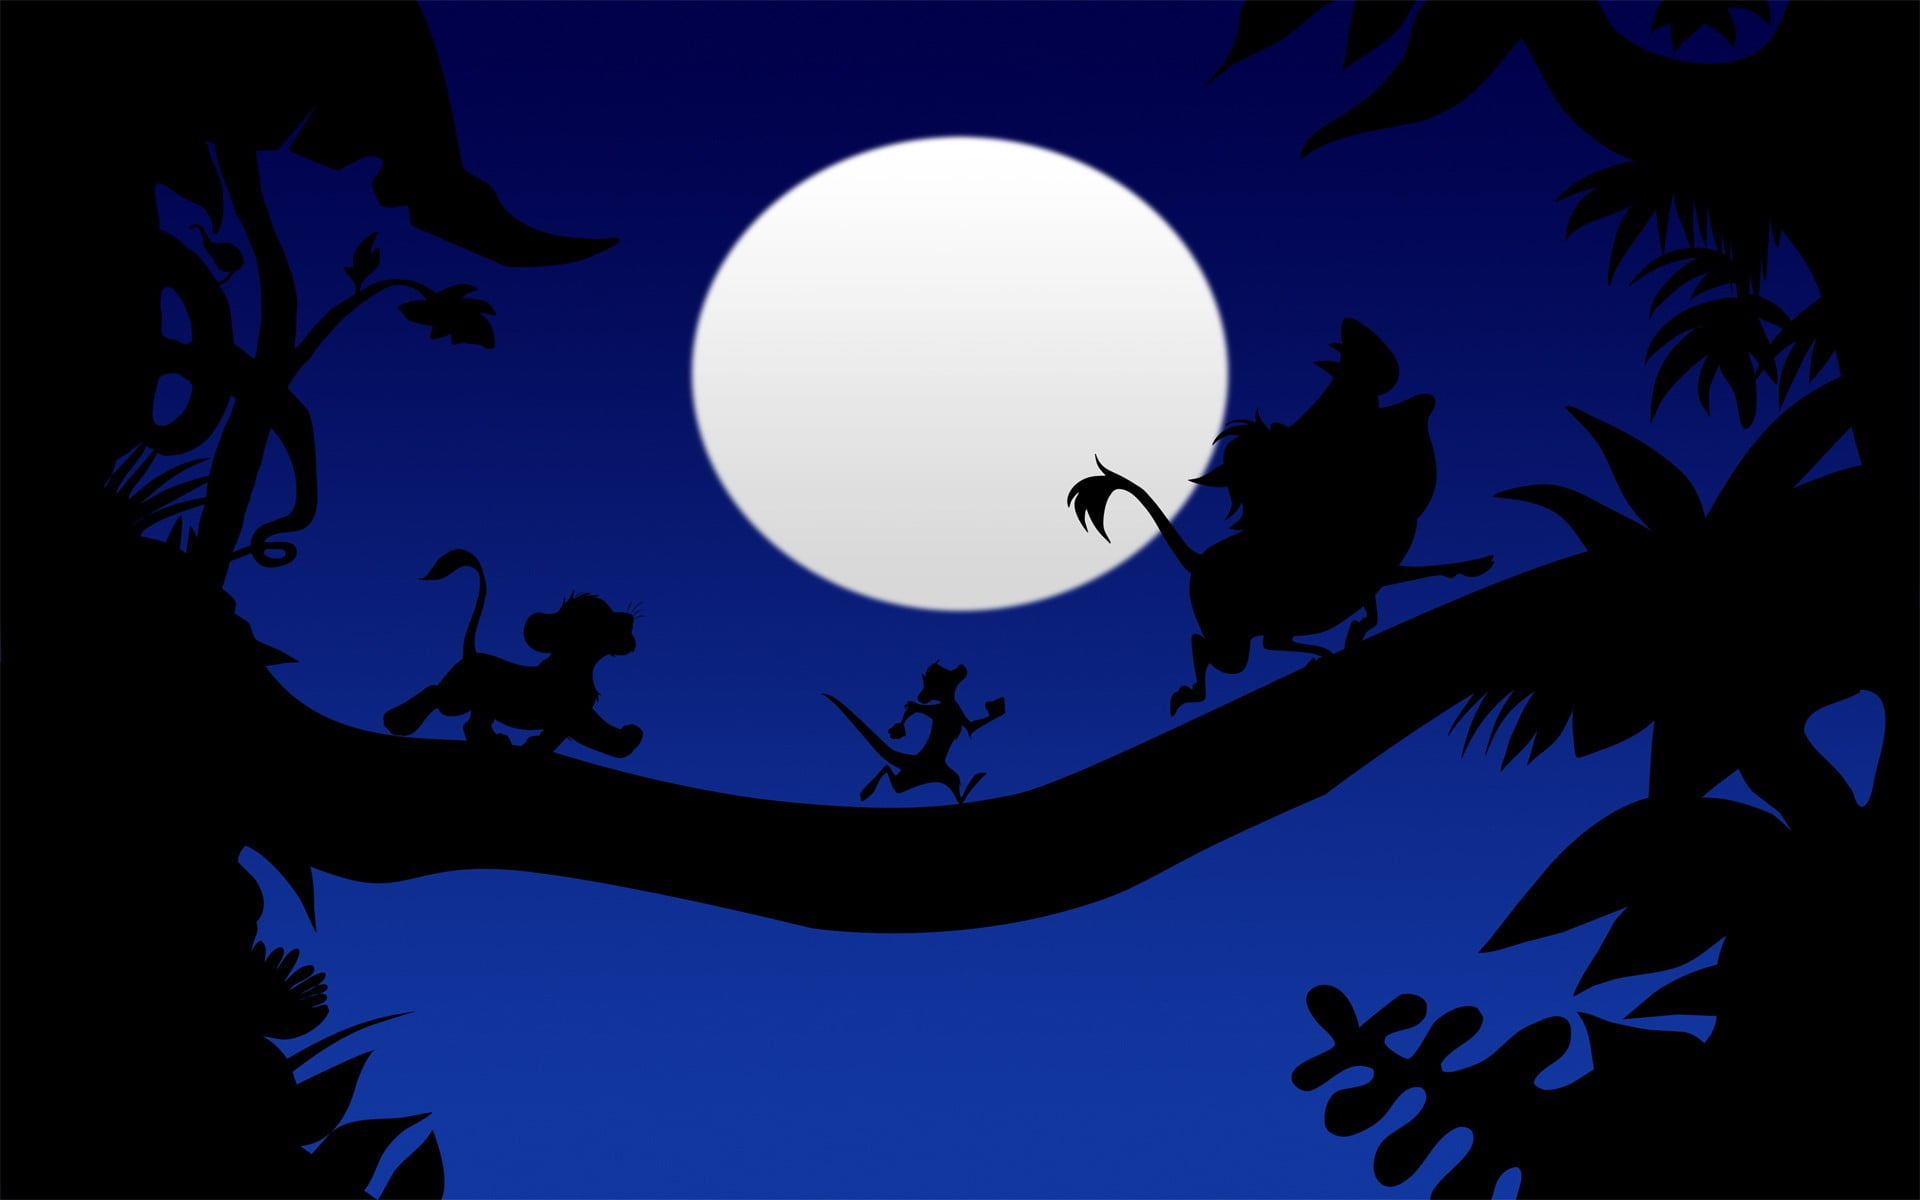 Lion King Wallpaper, The Lion King, Cartoon, Animated - Silhouette , HD Wallpaper & Backgrounds